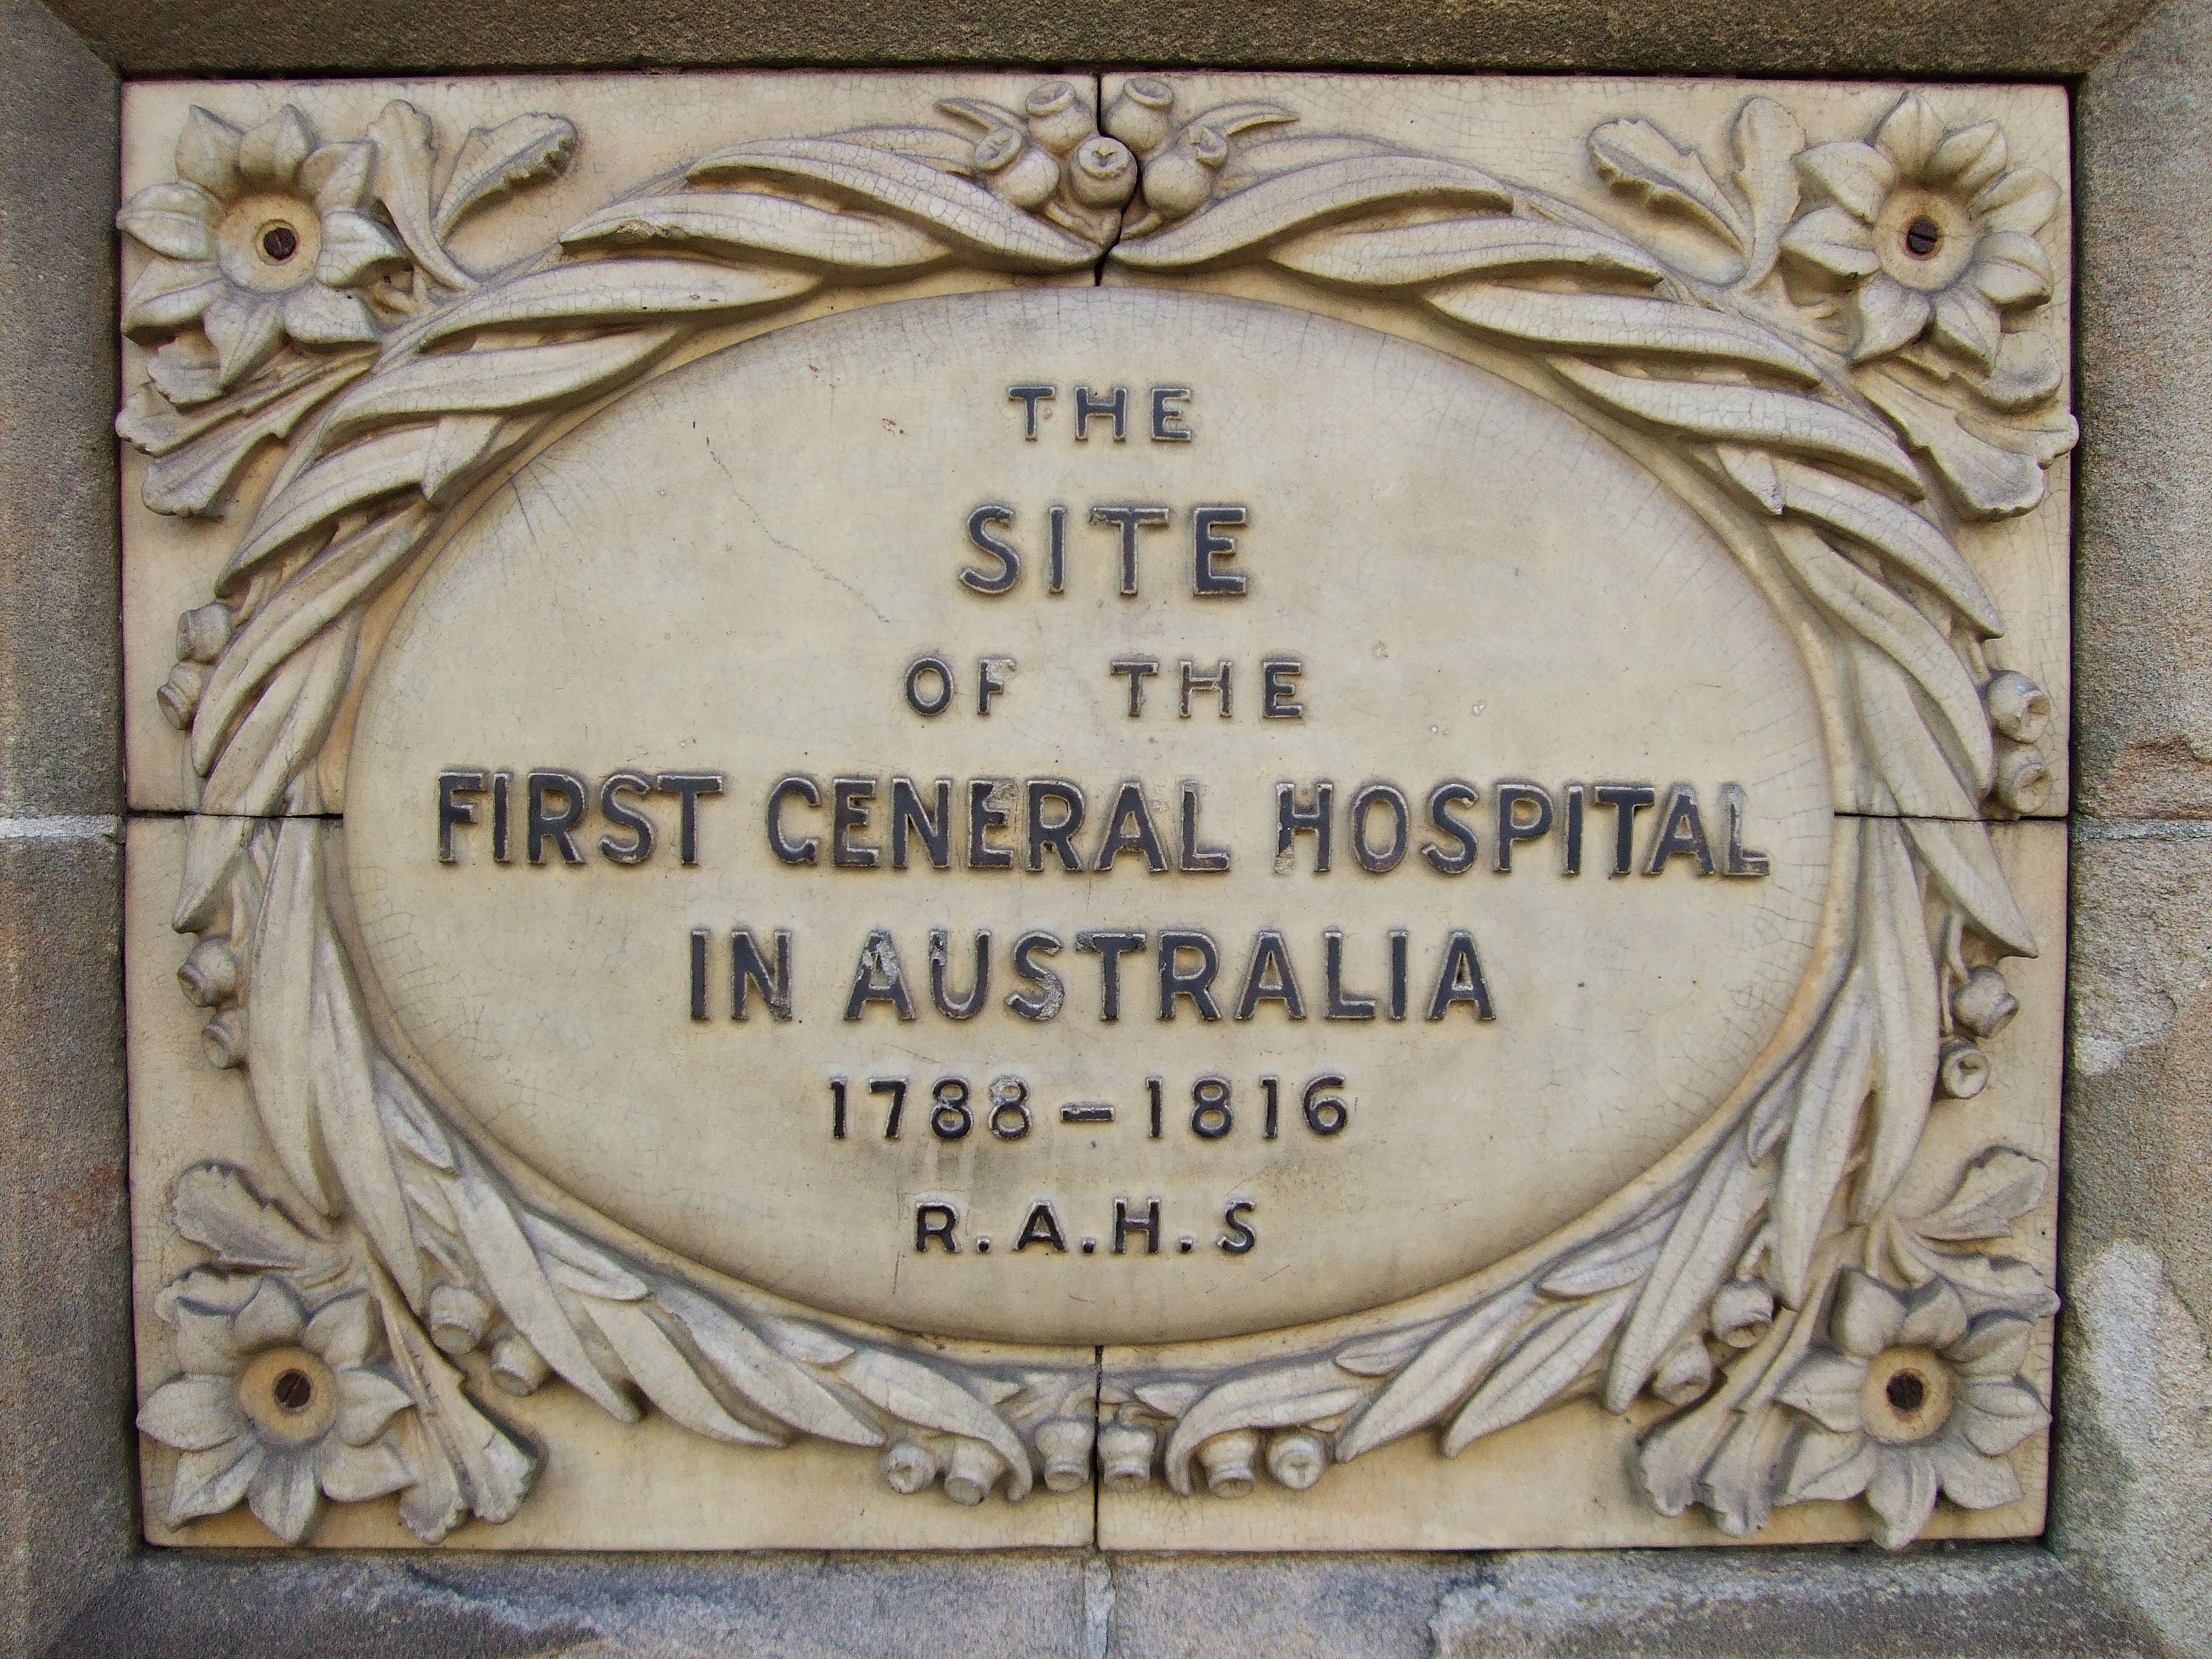 Sydney's First General Hospital, New South Wales, Australia, First Fleet, St. John's Cemetery Project, Old Parramattans, John Irving.